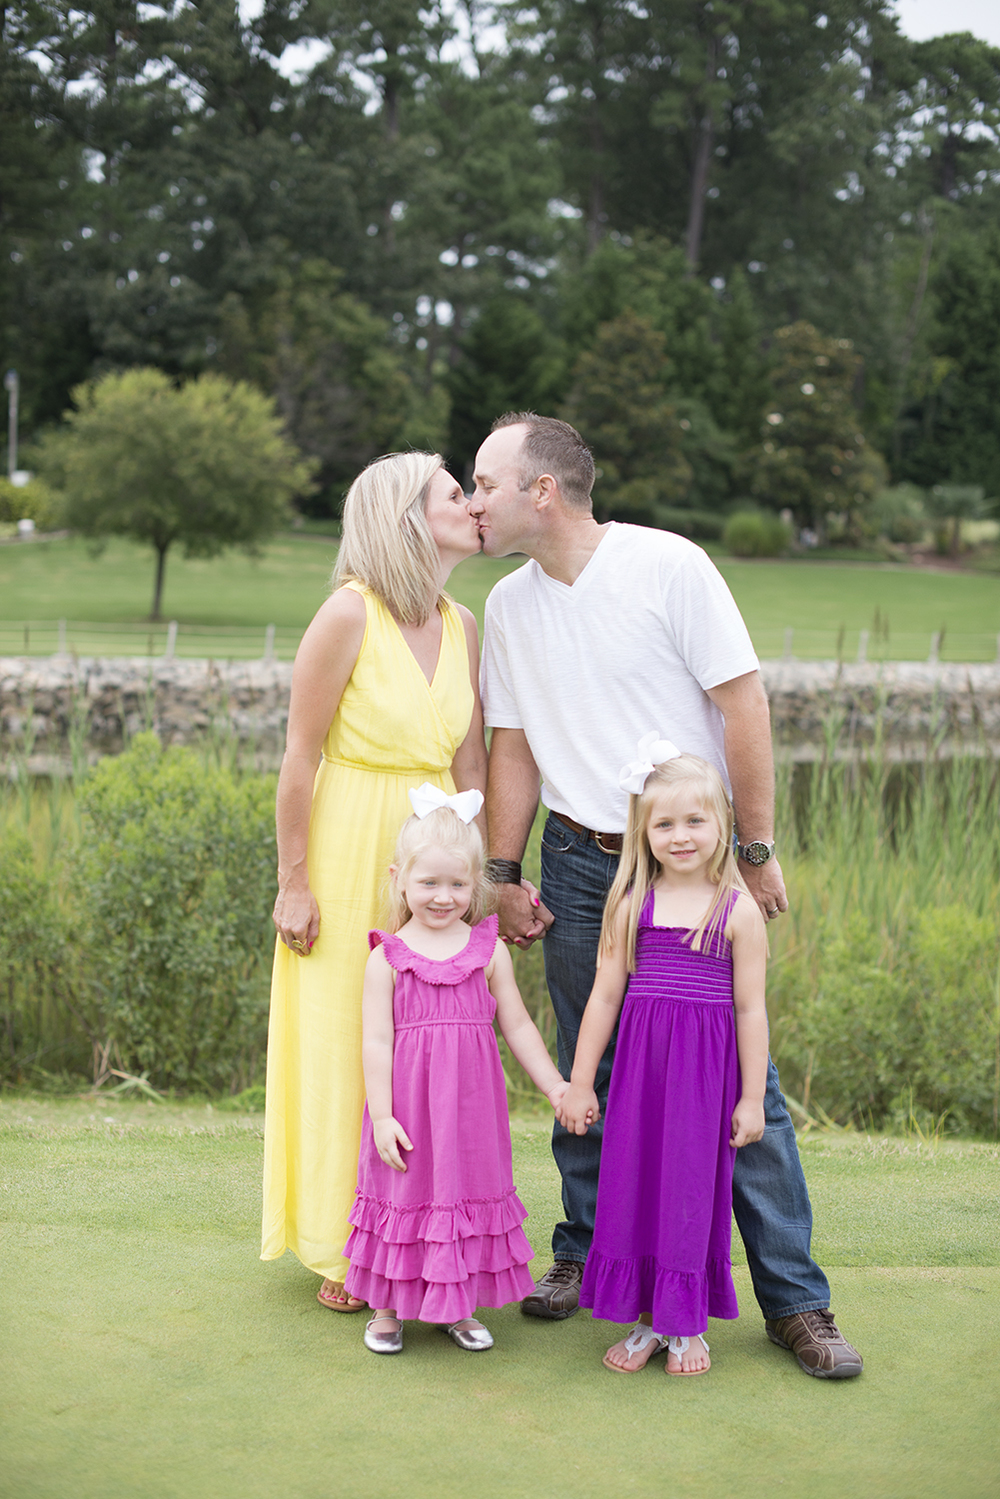 Summer family portraits at Princess Anne Country Club Golf Course in Virginia Beach